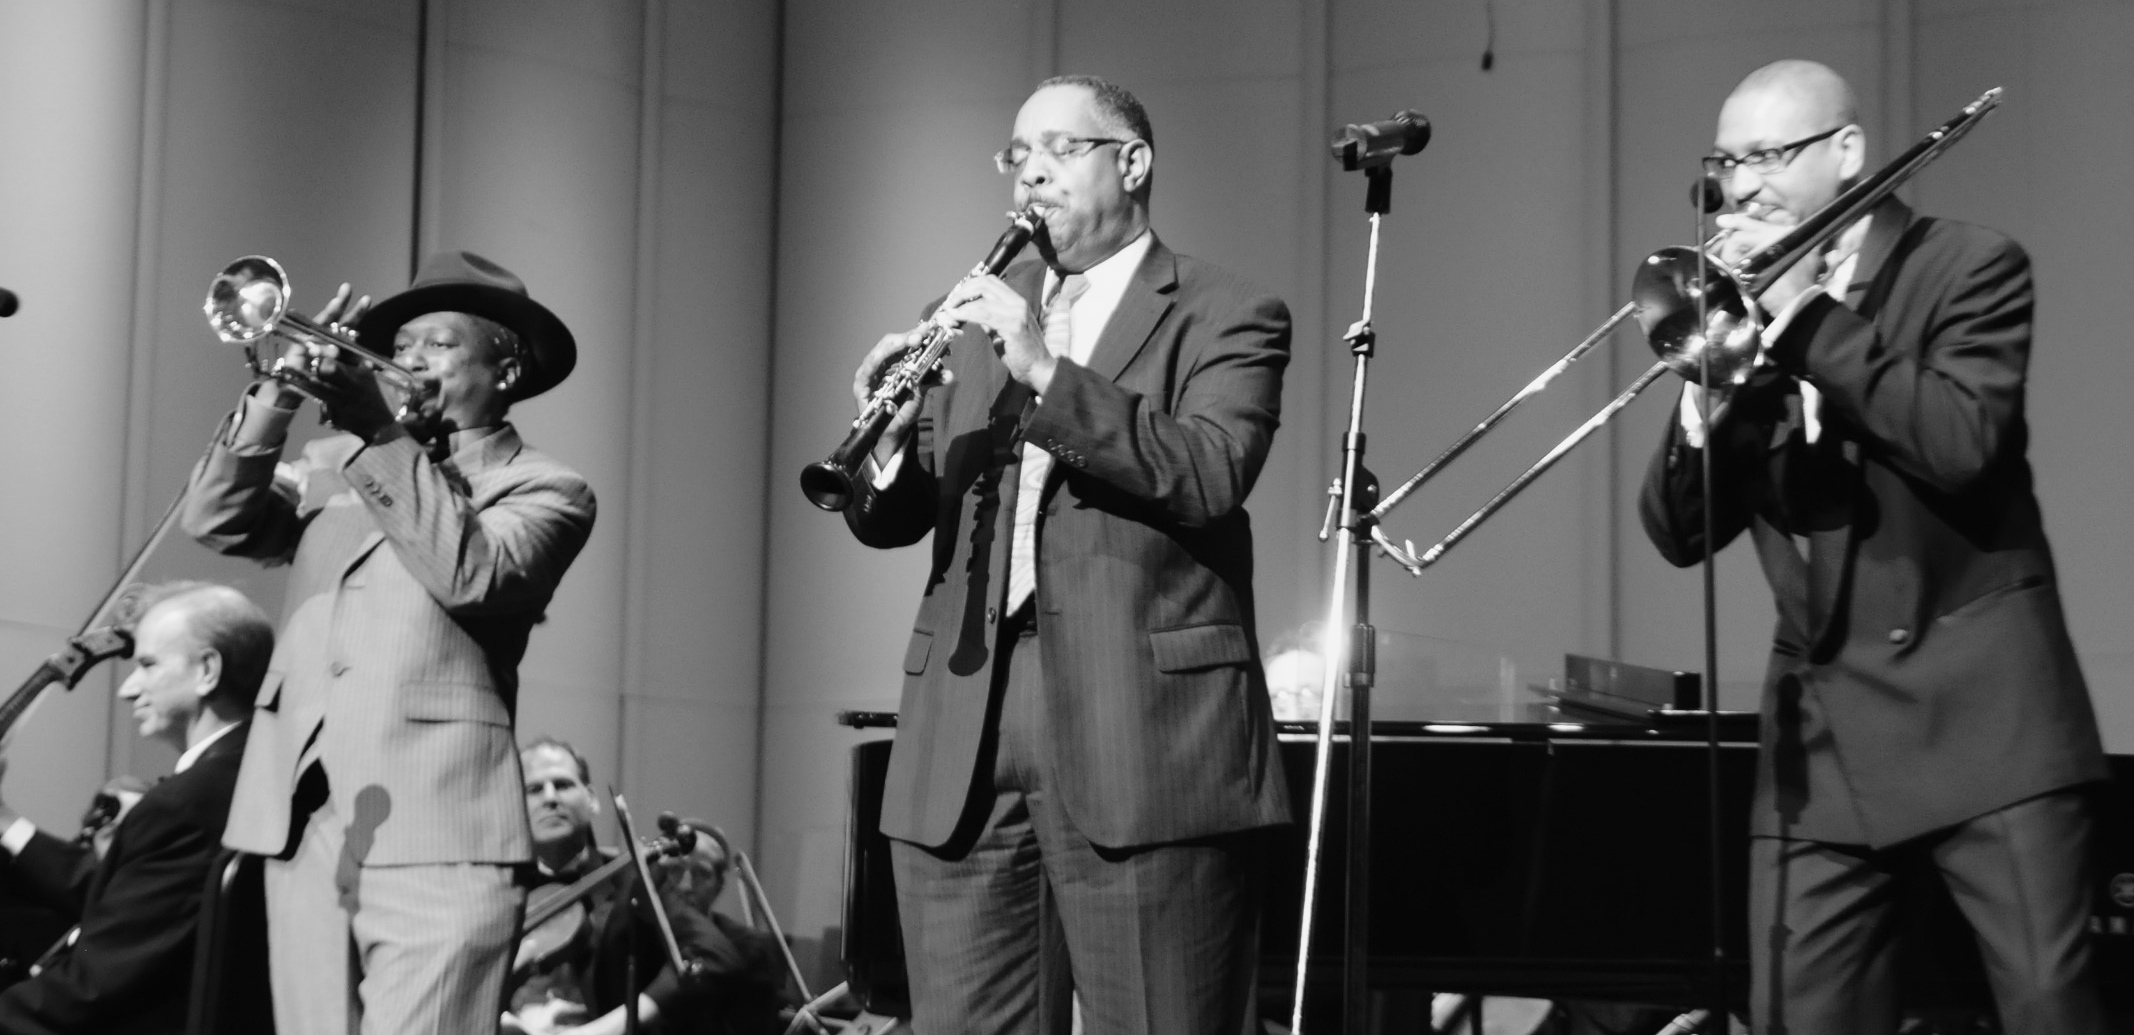 Kermit Ruffins, Michael White, and Delfeayo Marsalis